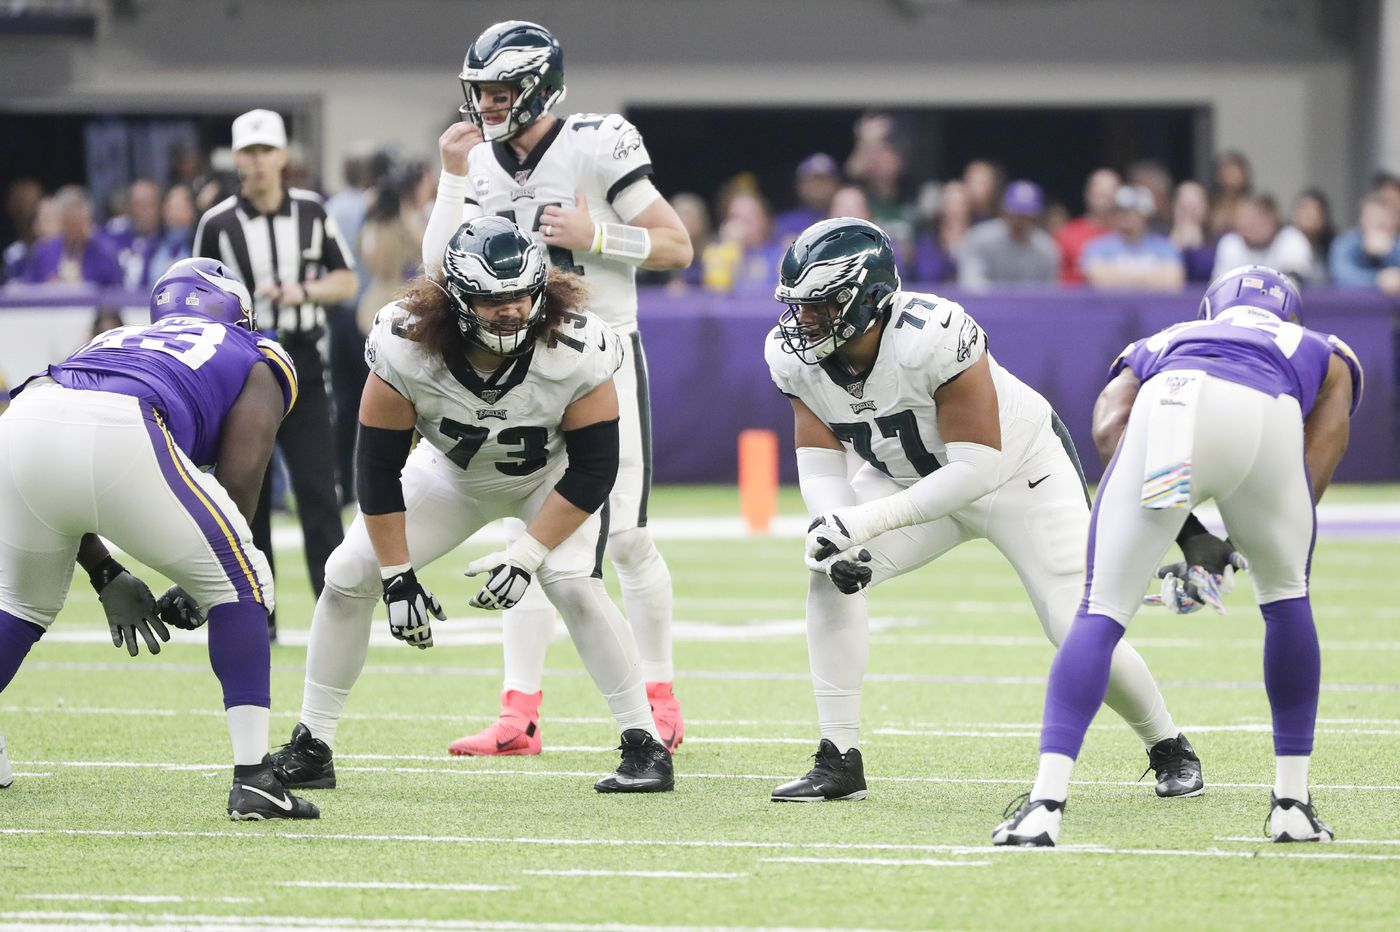 Eagles' Jason Peters is 'week-to-week' with knee injury, so rookie Andre Dillard is next up